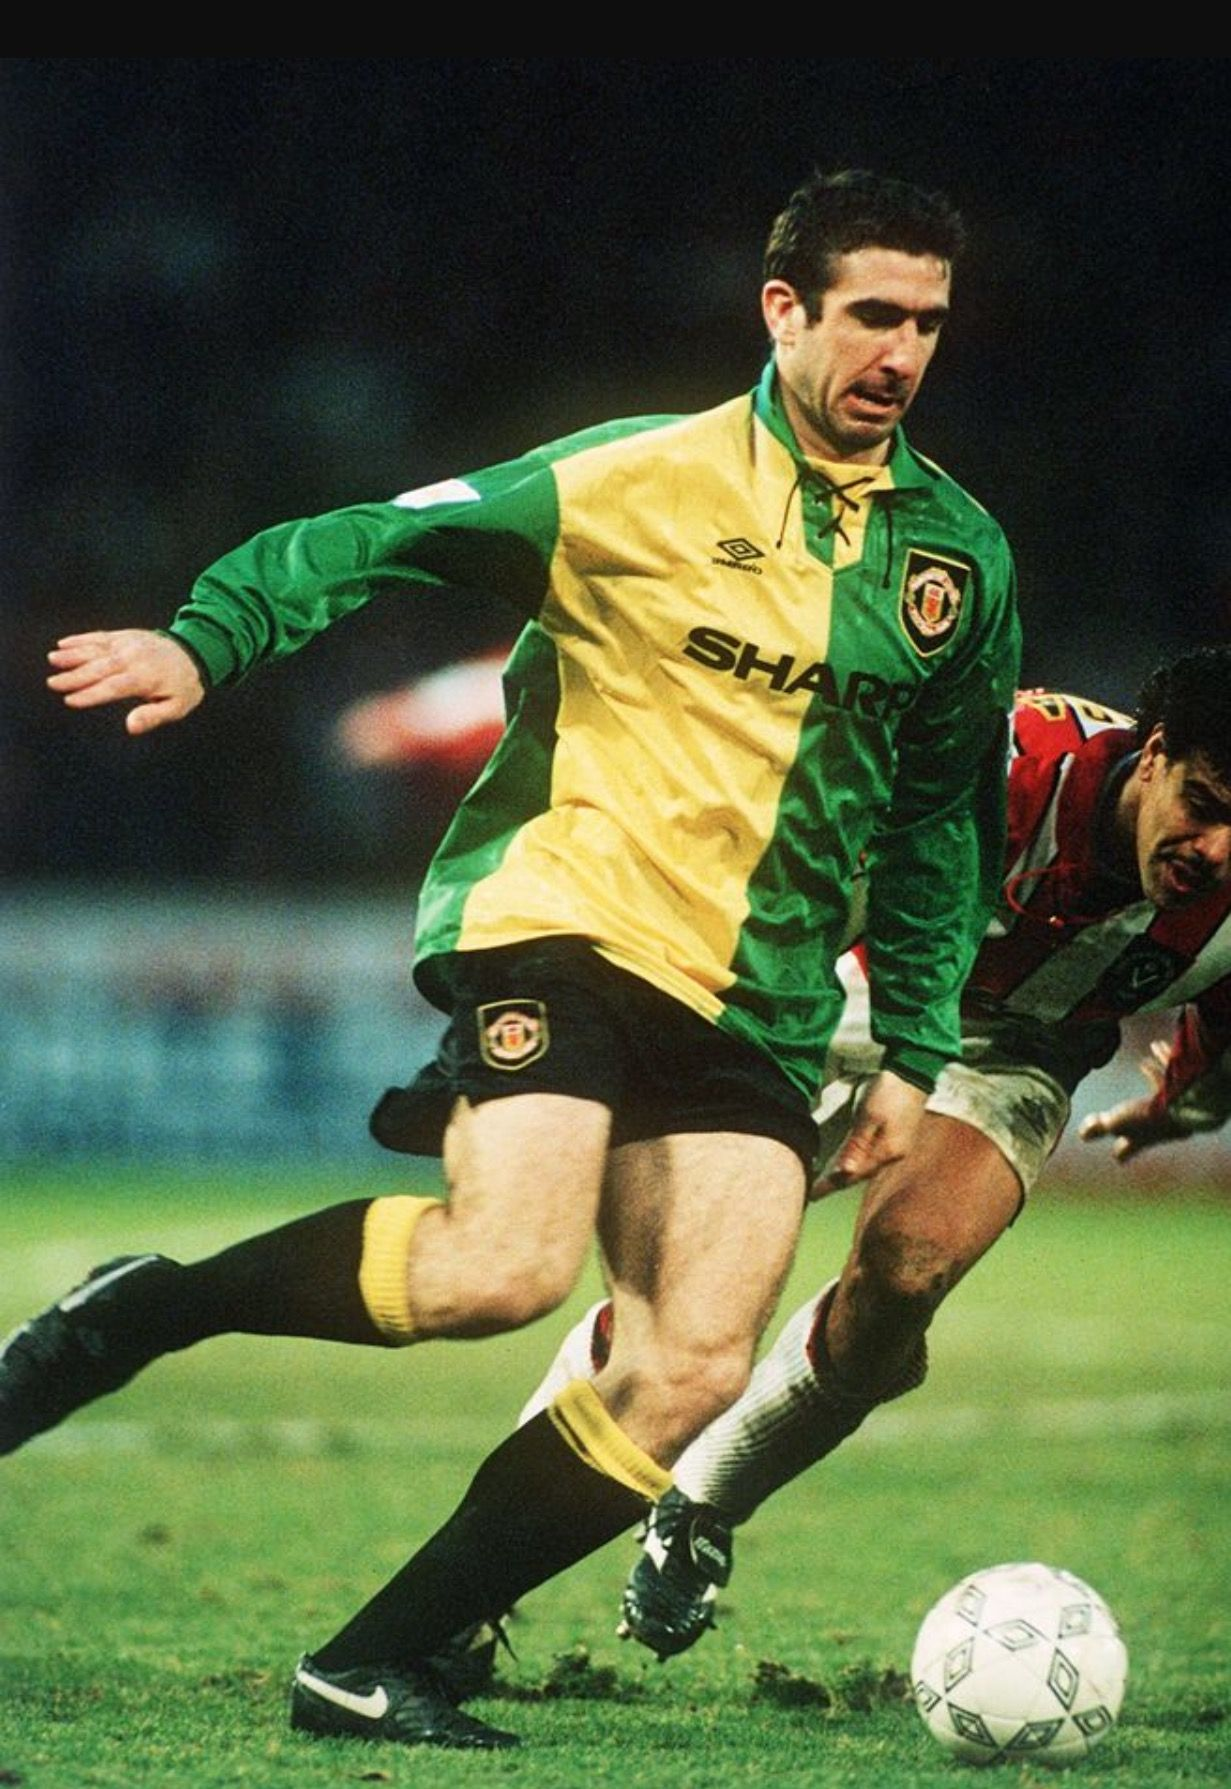 Panini euro 96 eric cantona #191 france rare nm/mt. Pin on Manchester United in Yellow and Green 92/94